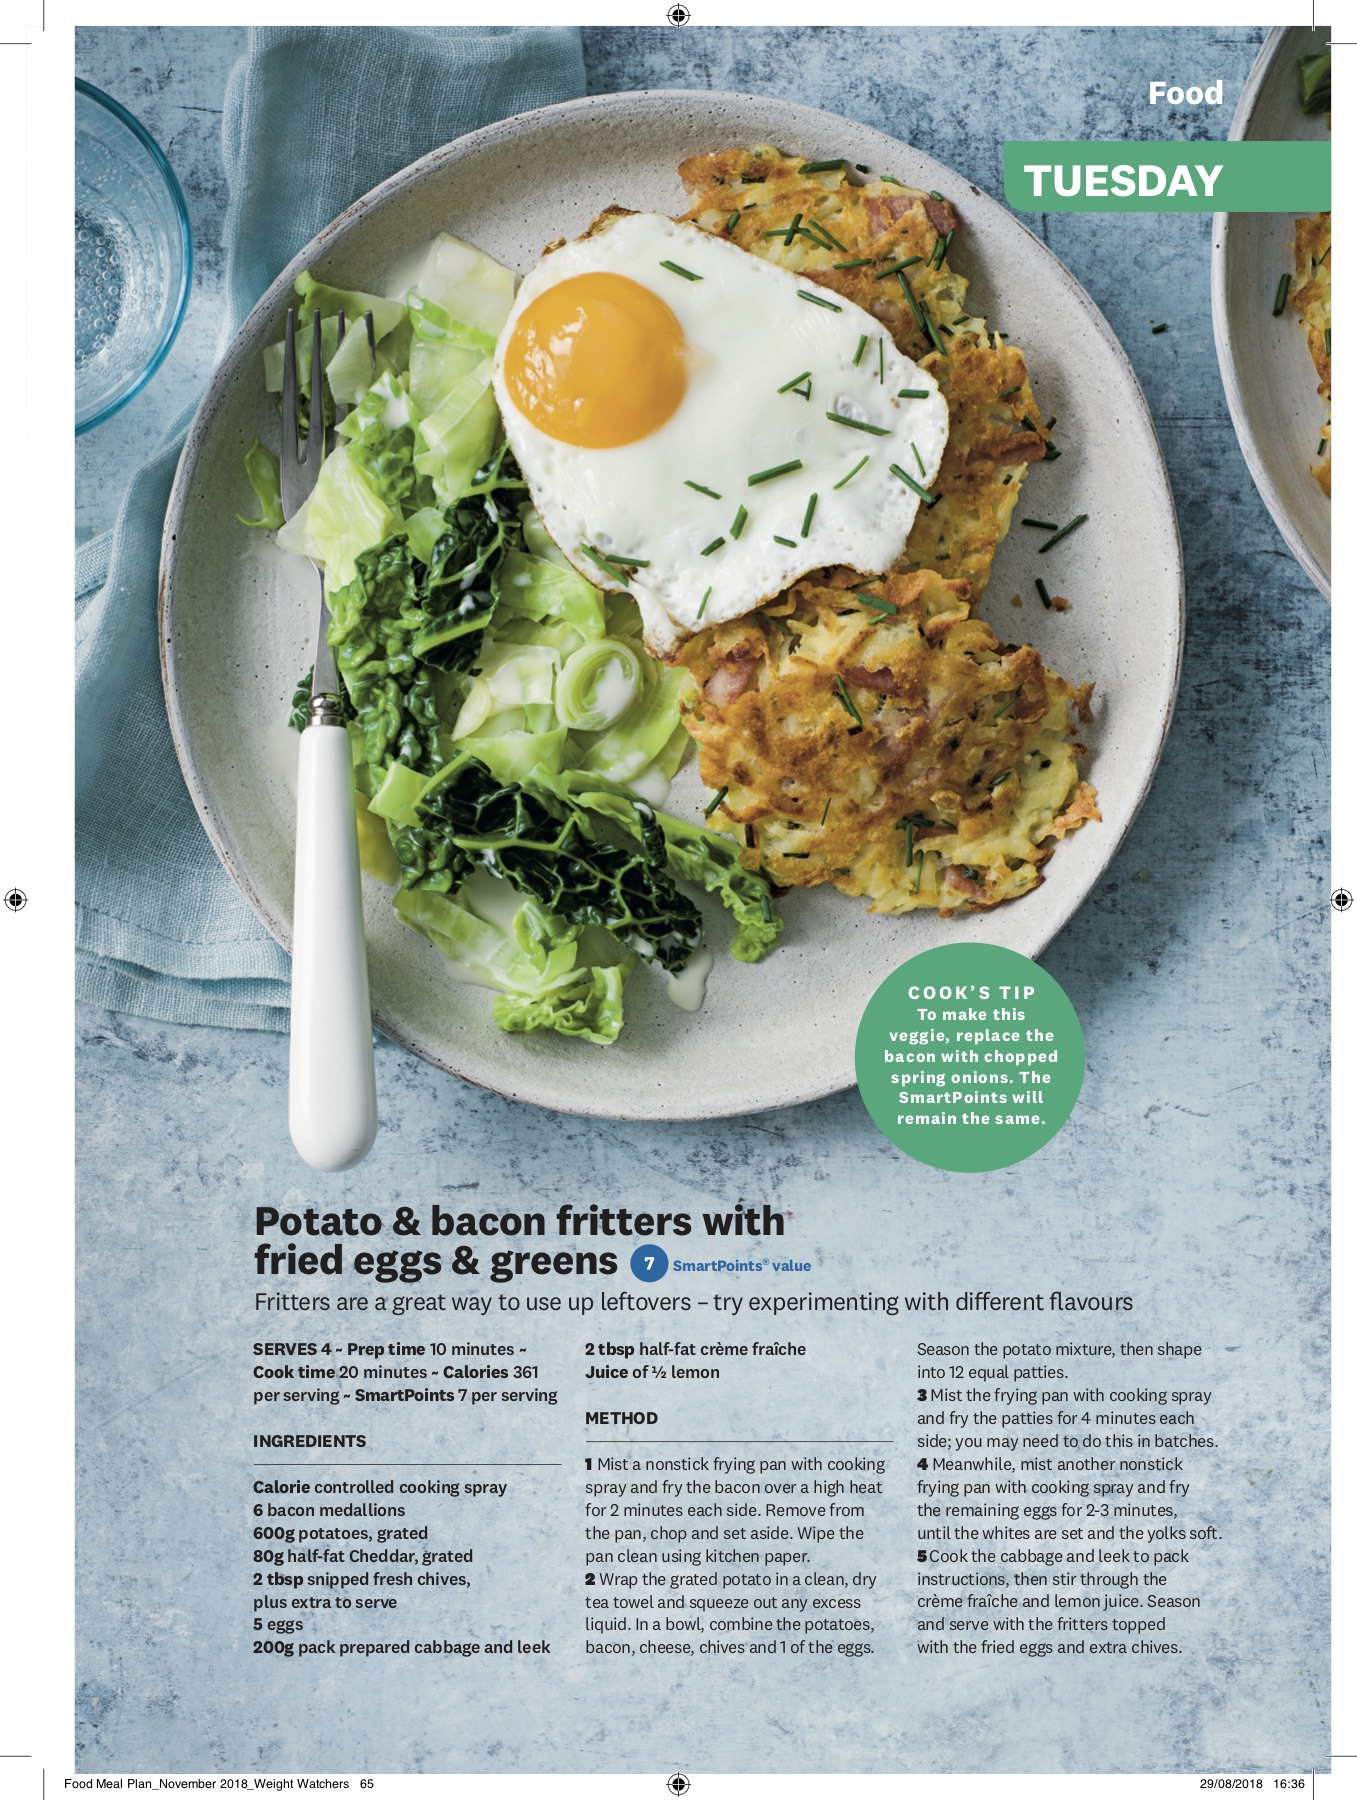 Recipes written and food styled by Ella Tarn for Weight Watchers Magazine